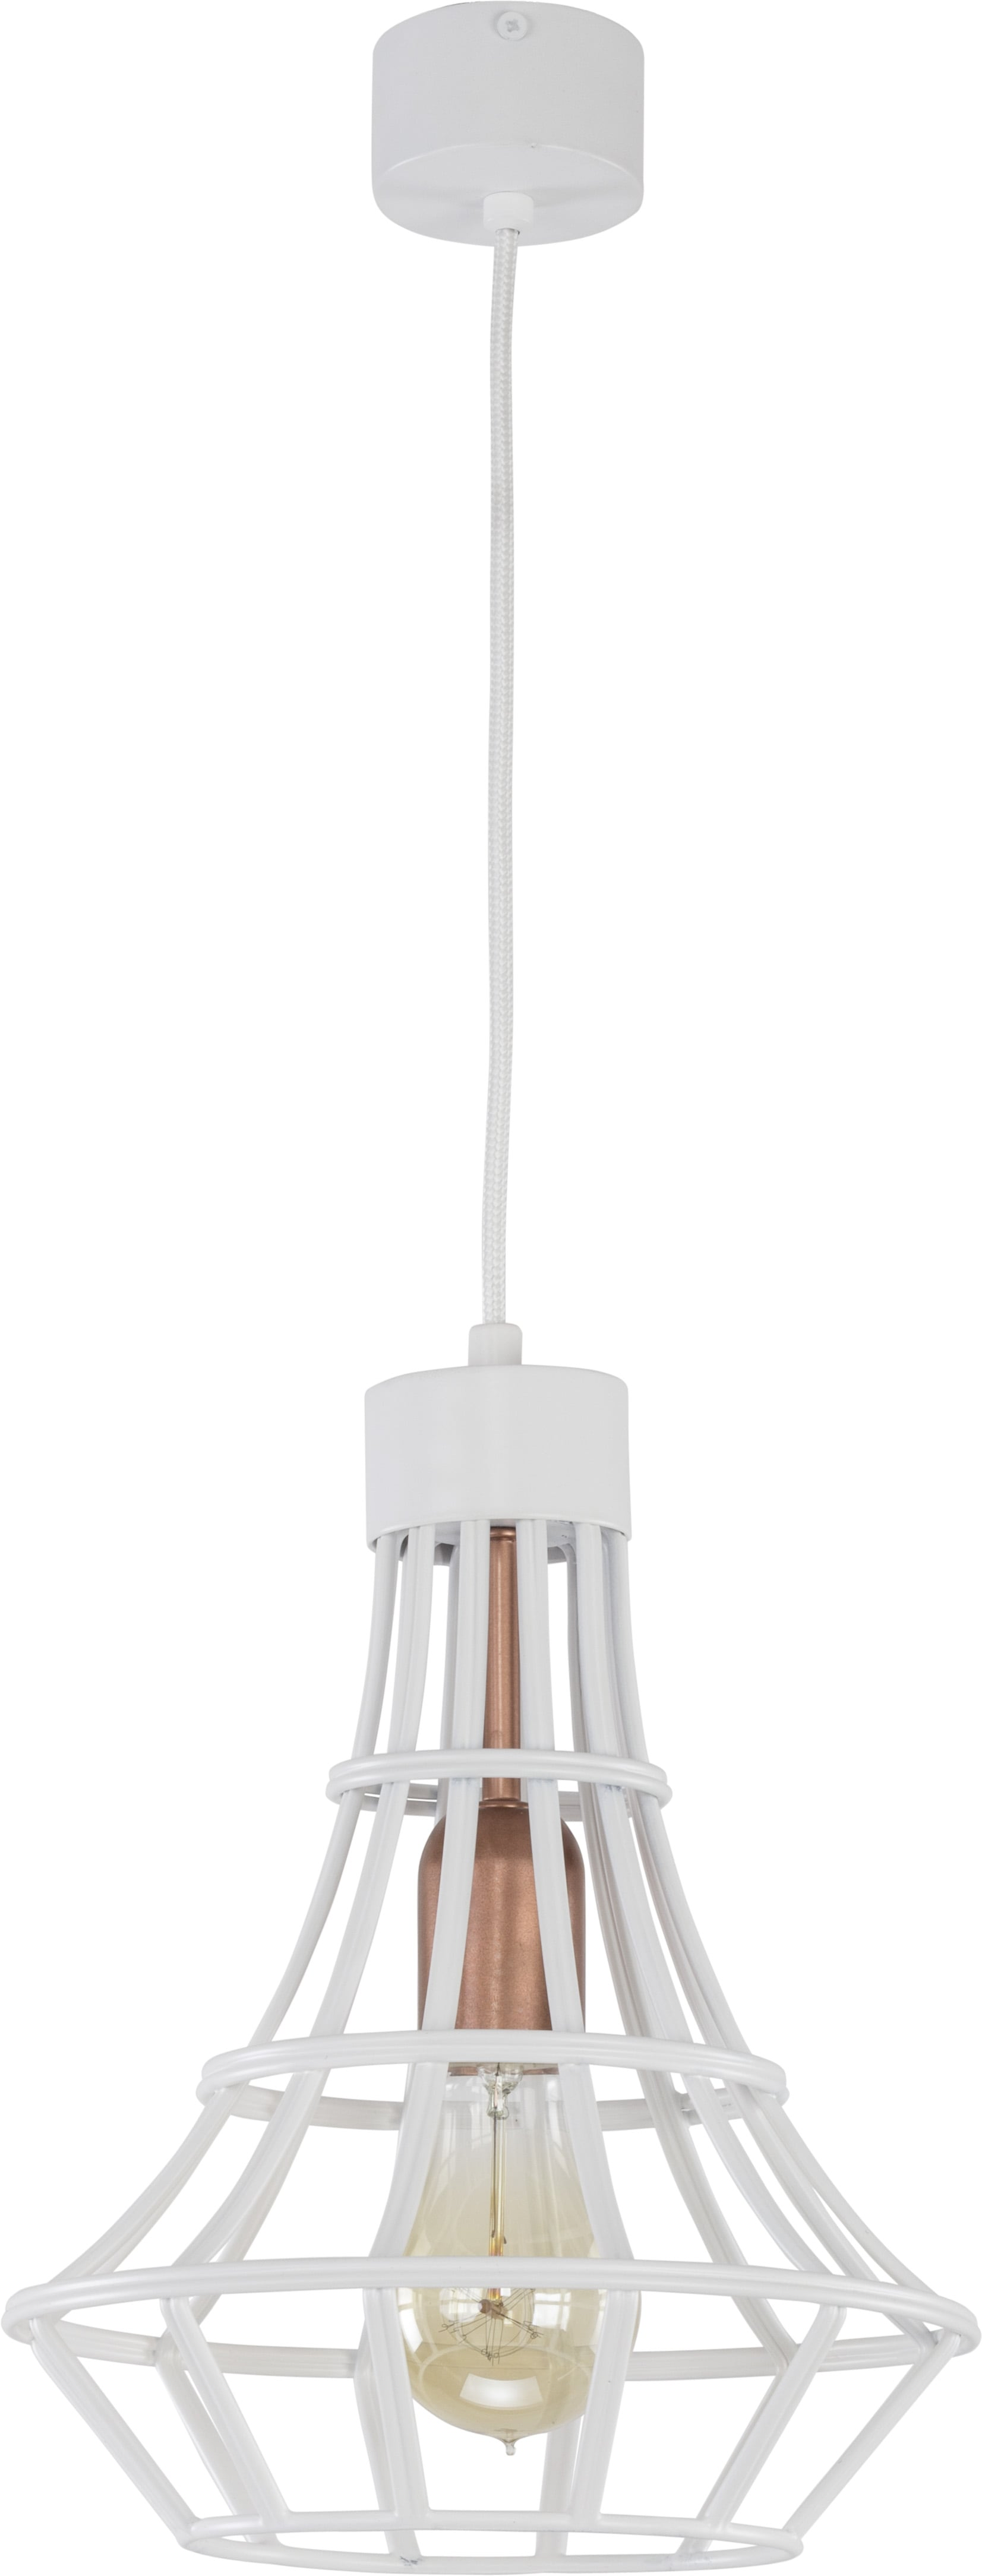 Hanging lamp System Drop S White E27 1 x 60W